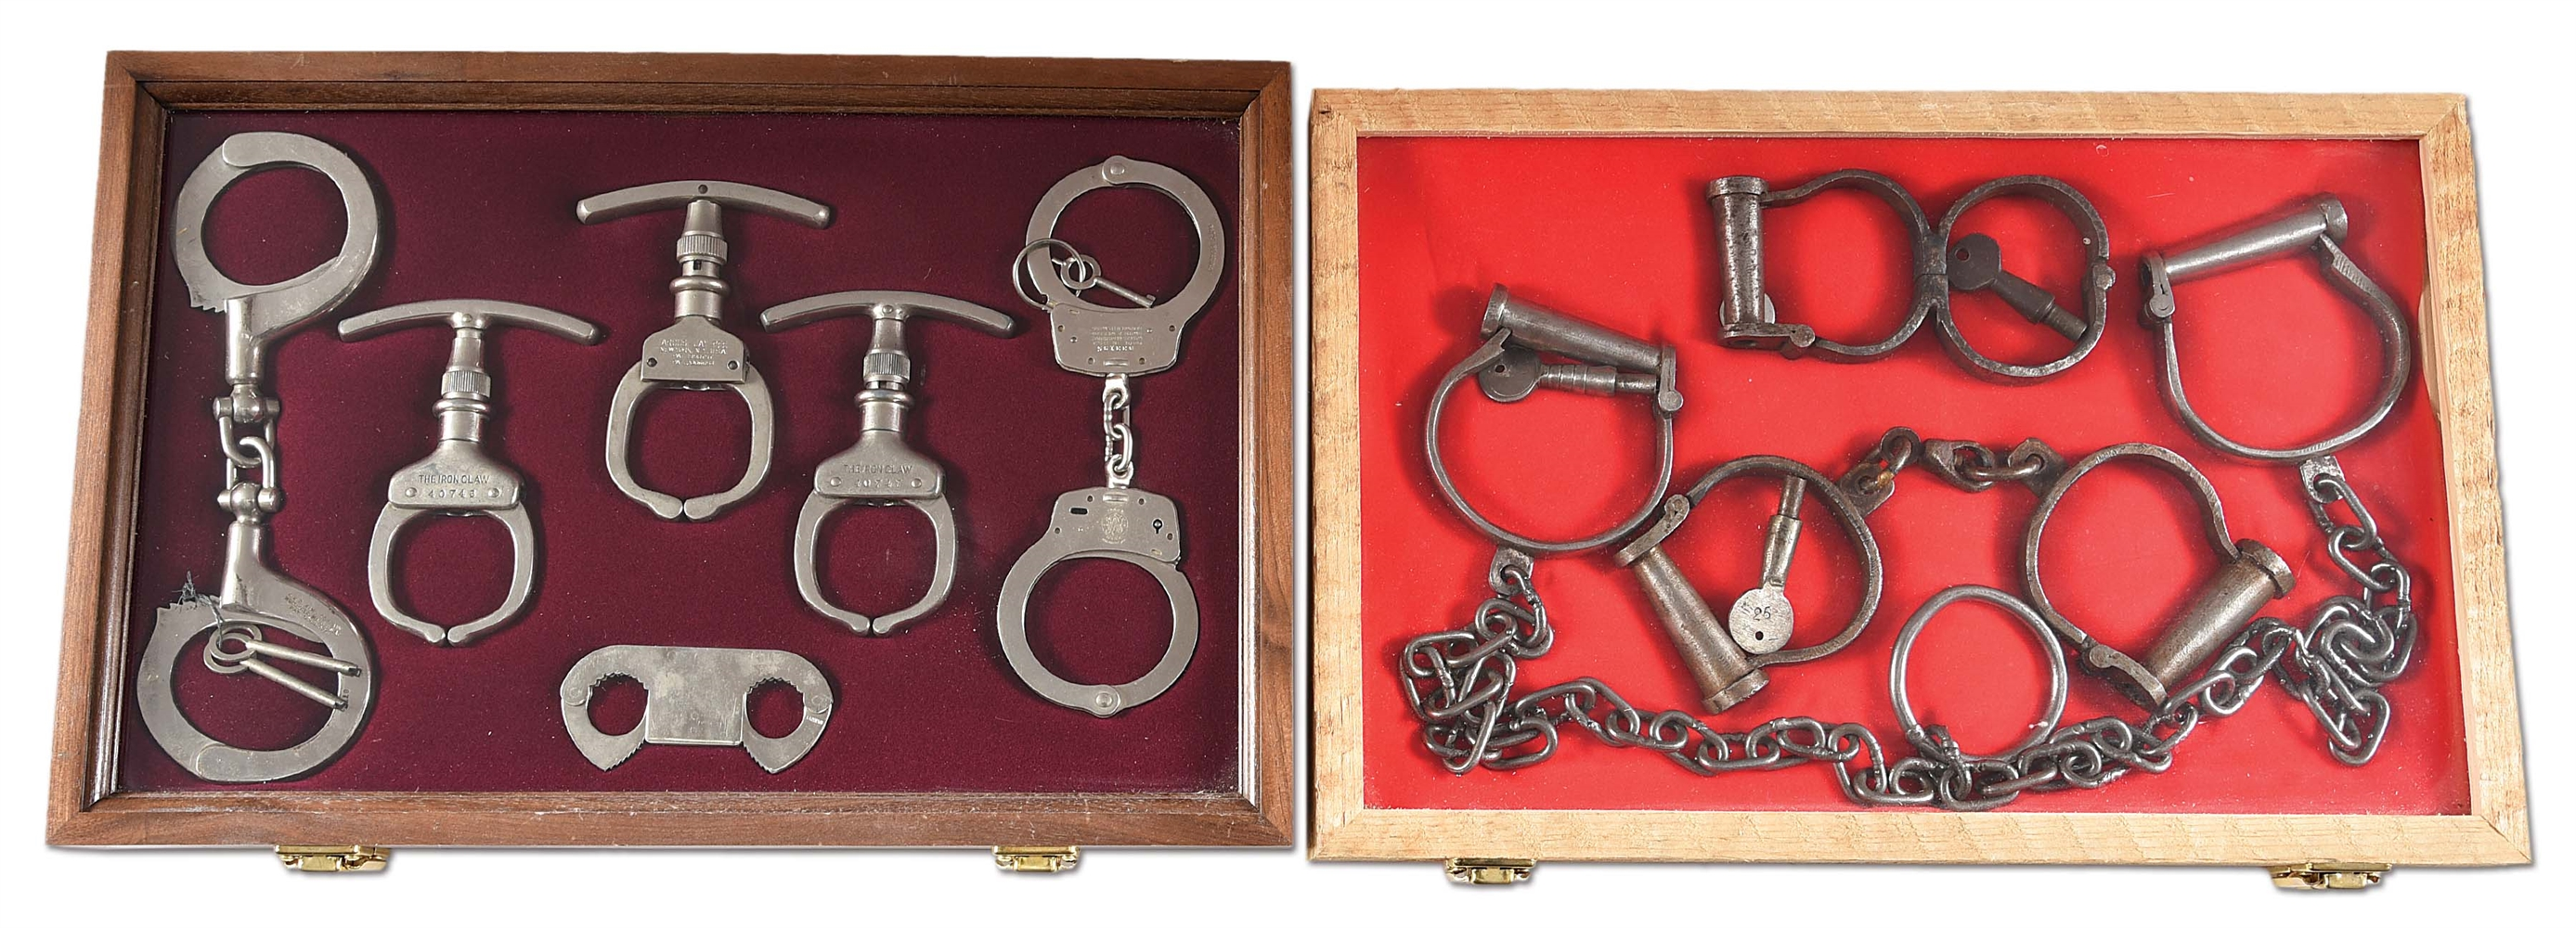 LOT OF 2: DISPLAYS OF VINTAGE HANDCUFFS AND RESTRAINTS.